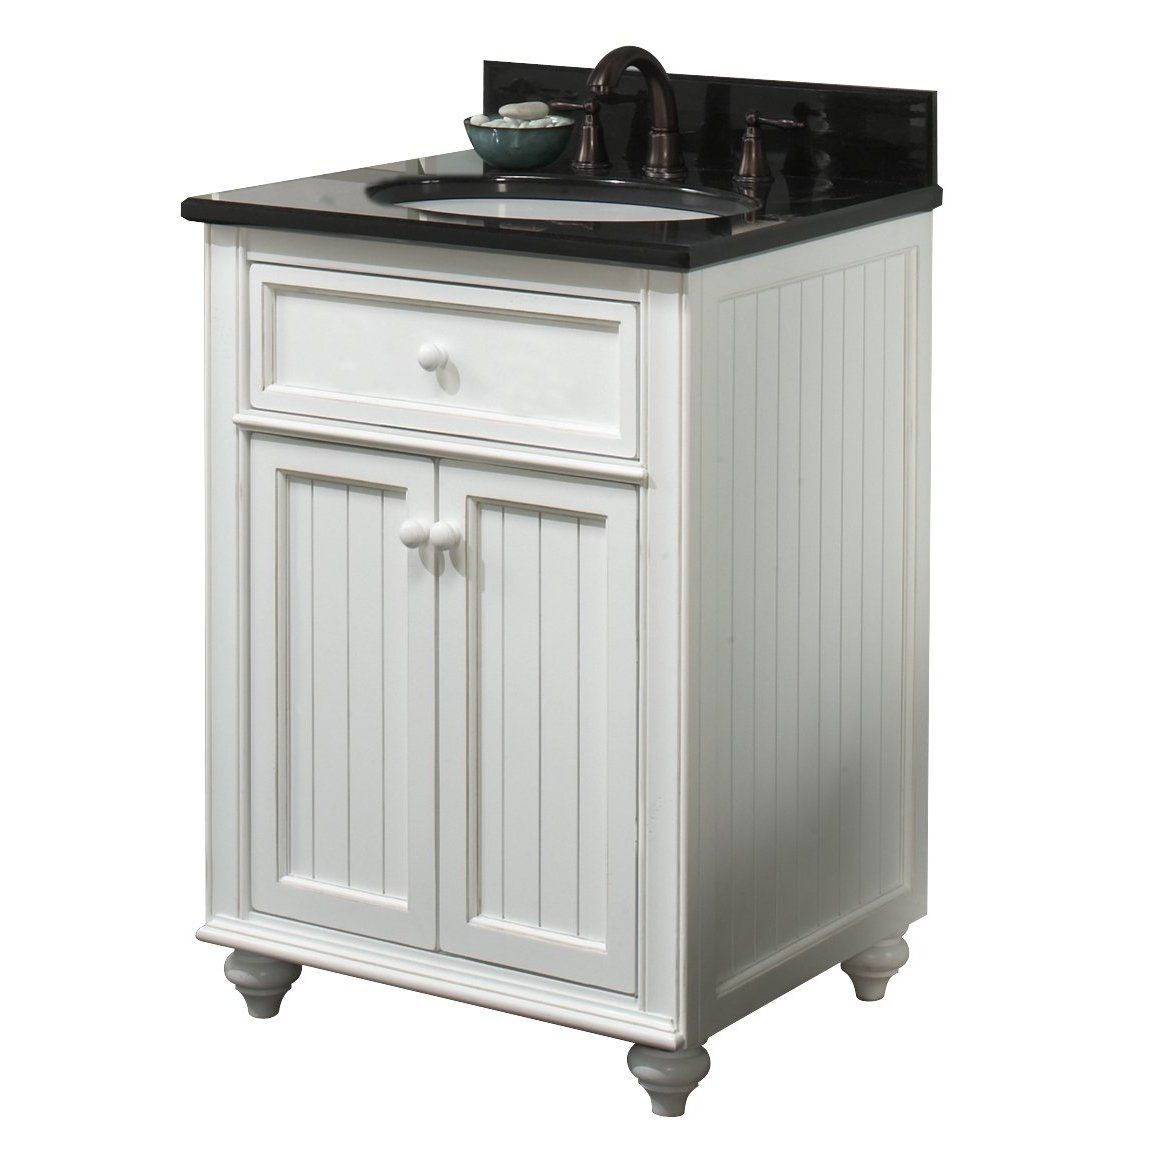 Cottage Retreat Vanity Cabinet 24 Inch Cr2421 By Sagehill Designs Traditional Bathroom Vanities Without Tops Unique